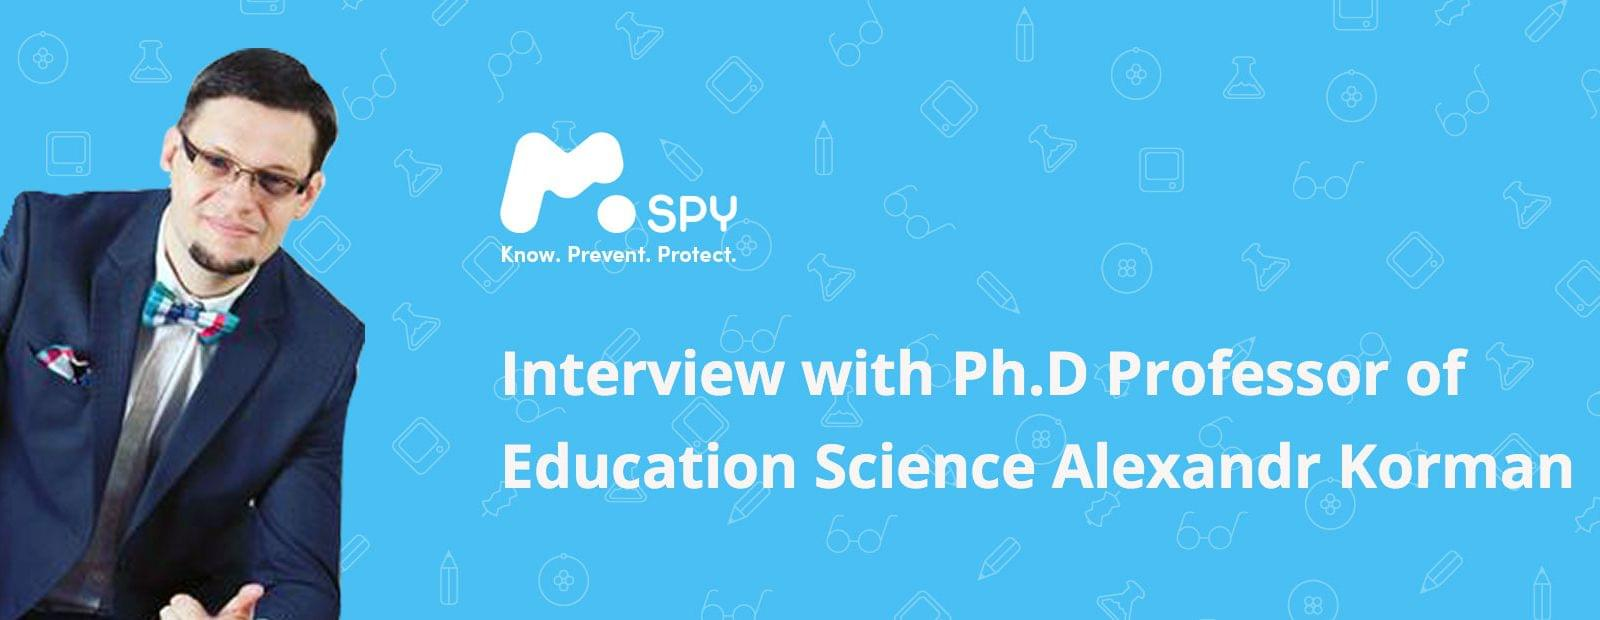 mSpy interview with Dr. Alexandr Korman, professor of Education Science